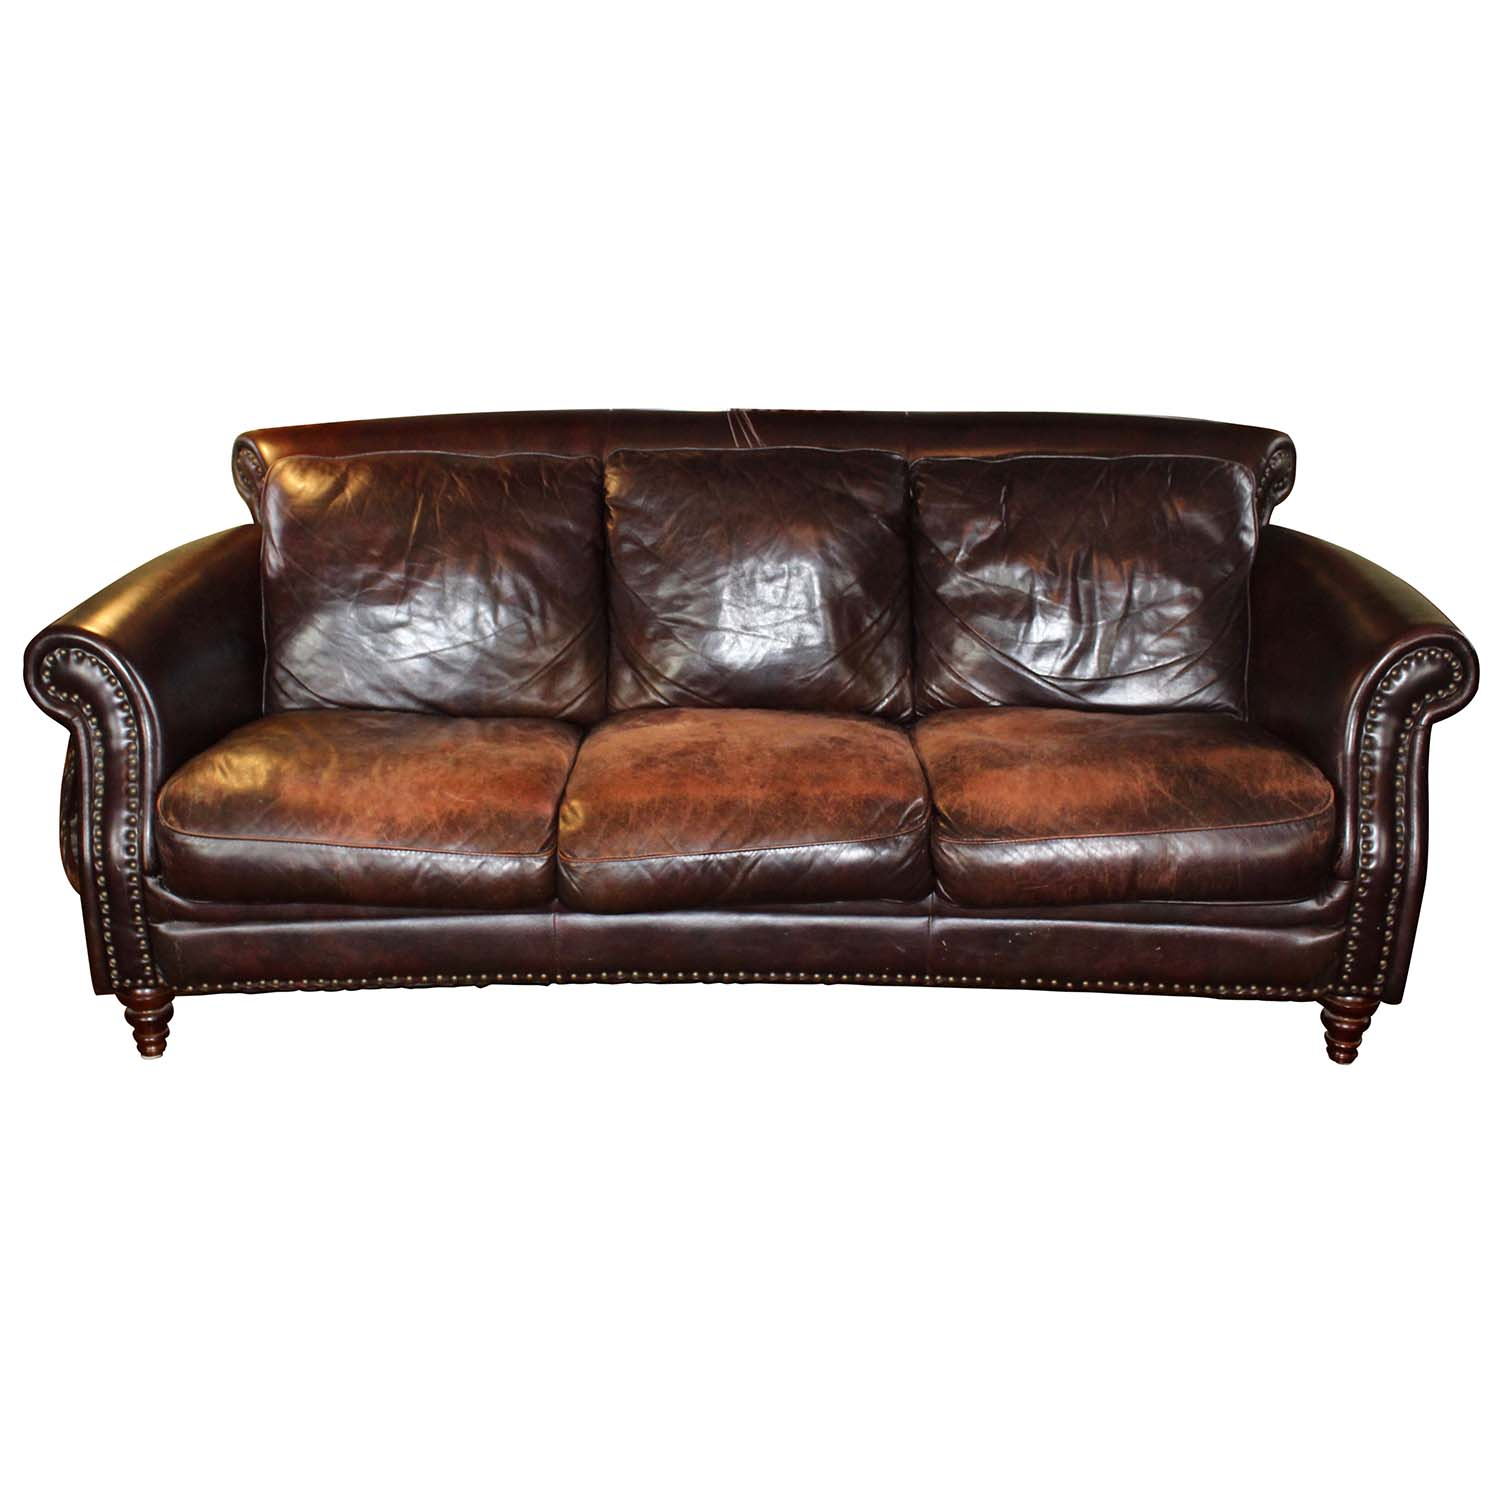 brown leather studded sofa average size of a bed cordovan by decoro usa ebth